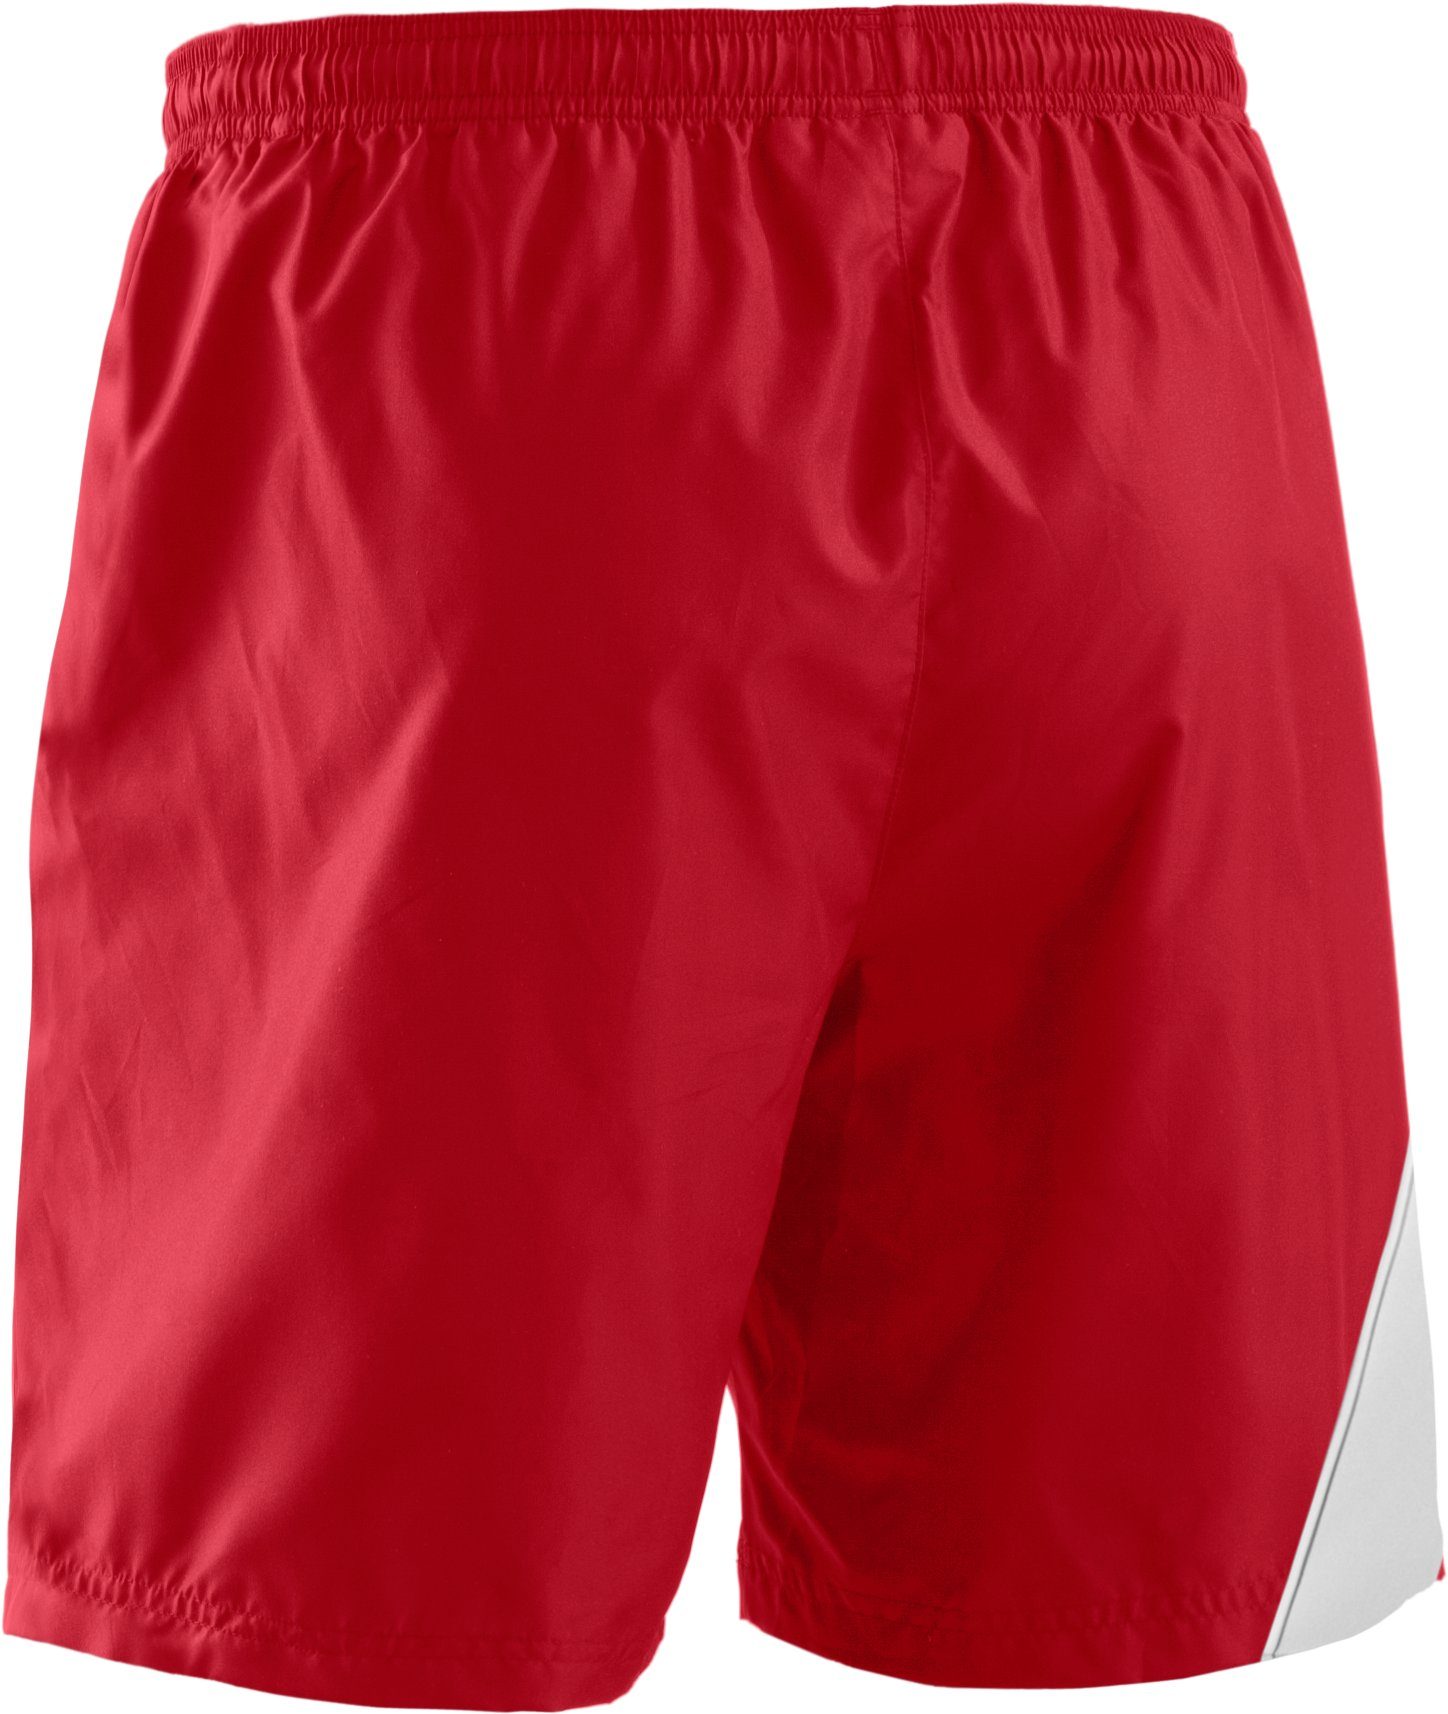 "Men's UA Chaos 7.5"" Soccer Shorts, Red"